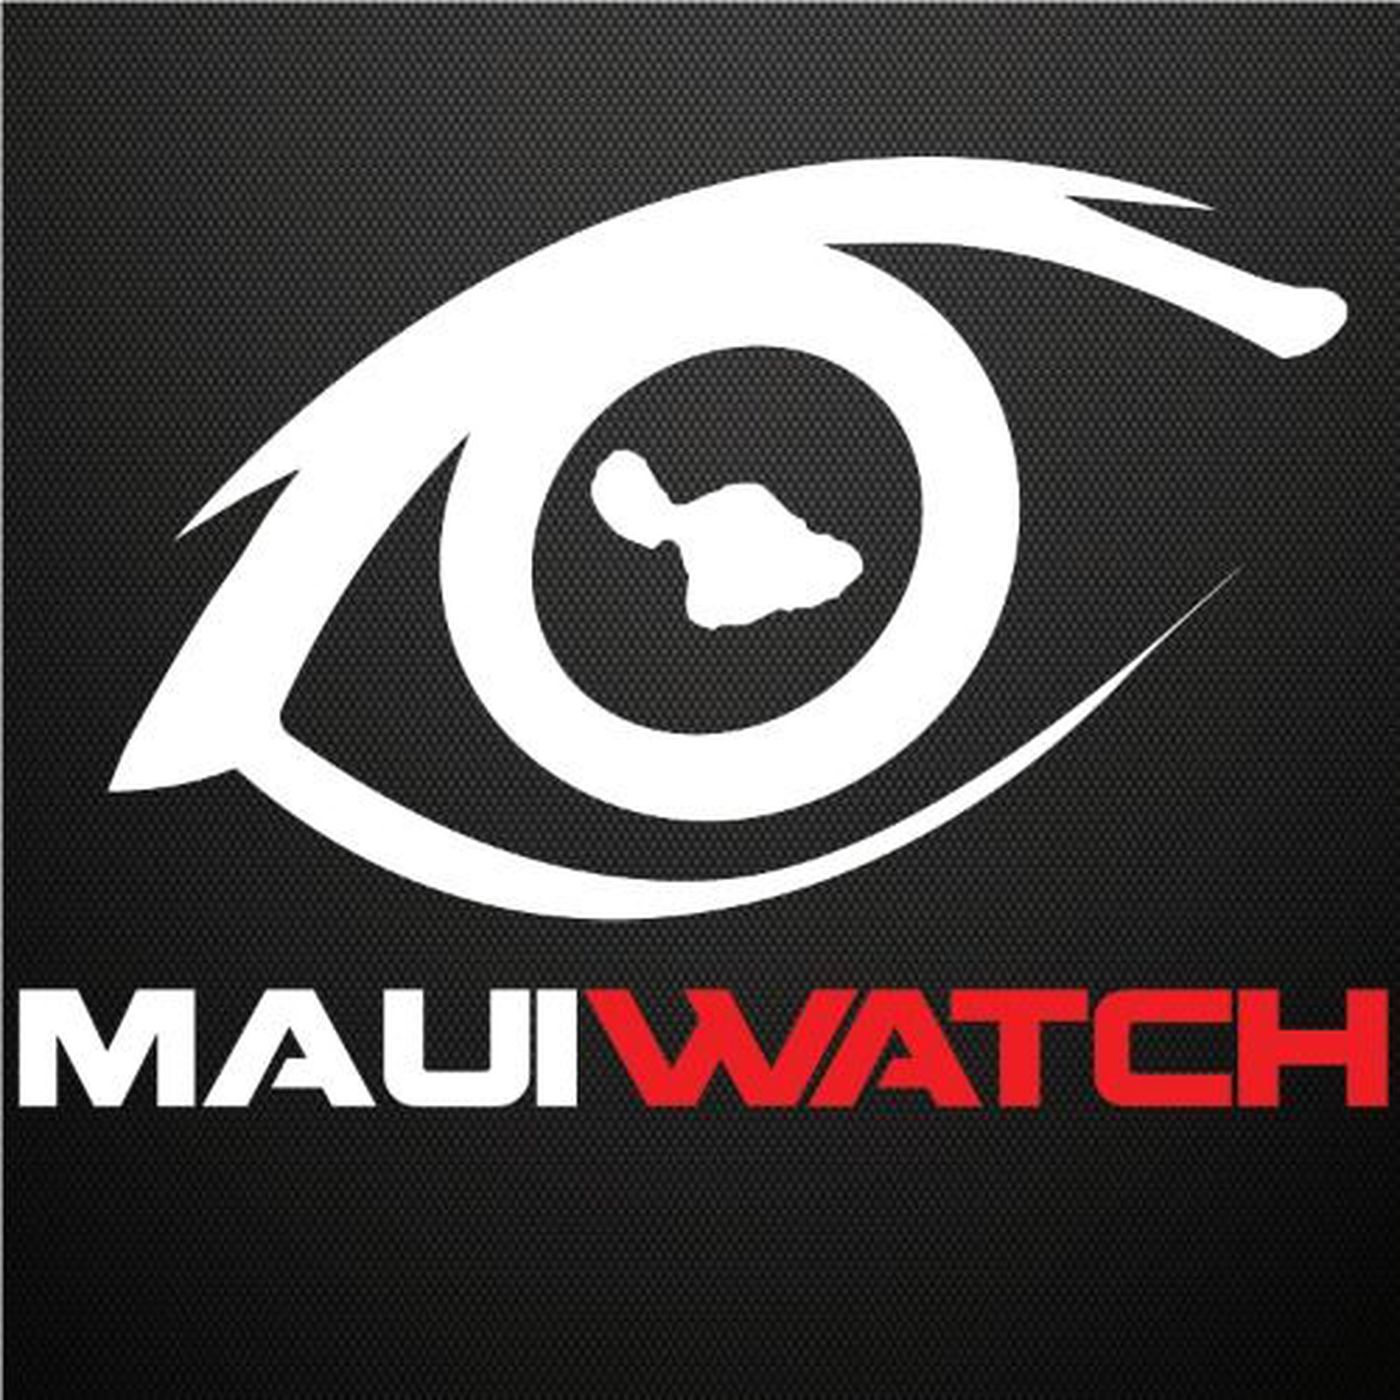 Popular Maui Facebook Page At Center Of Maui County Lawsuit